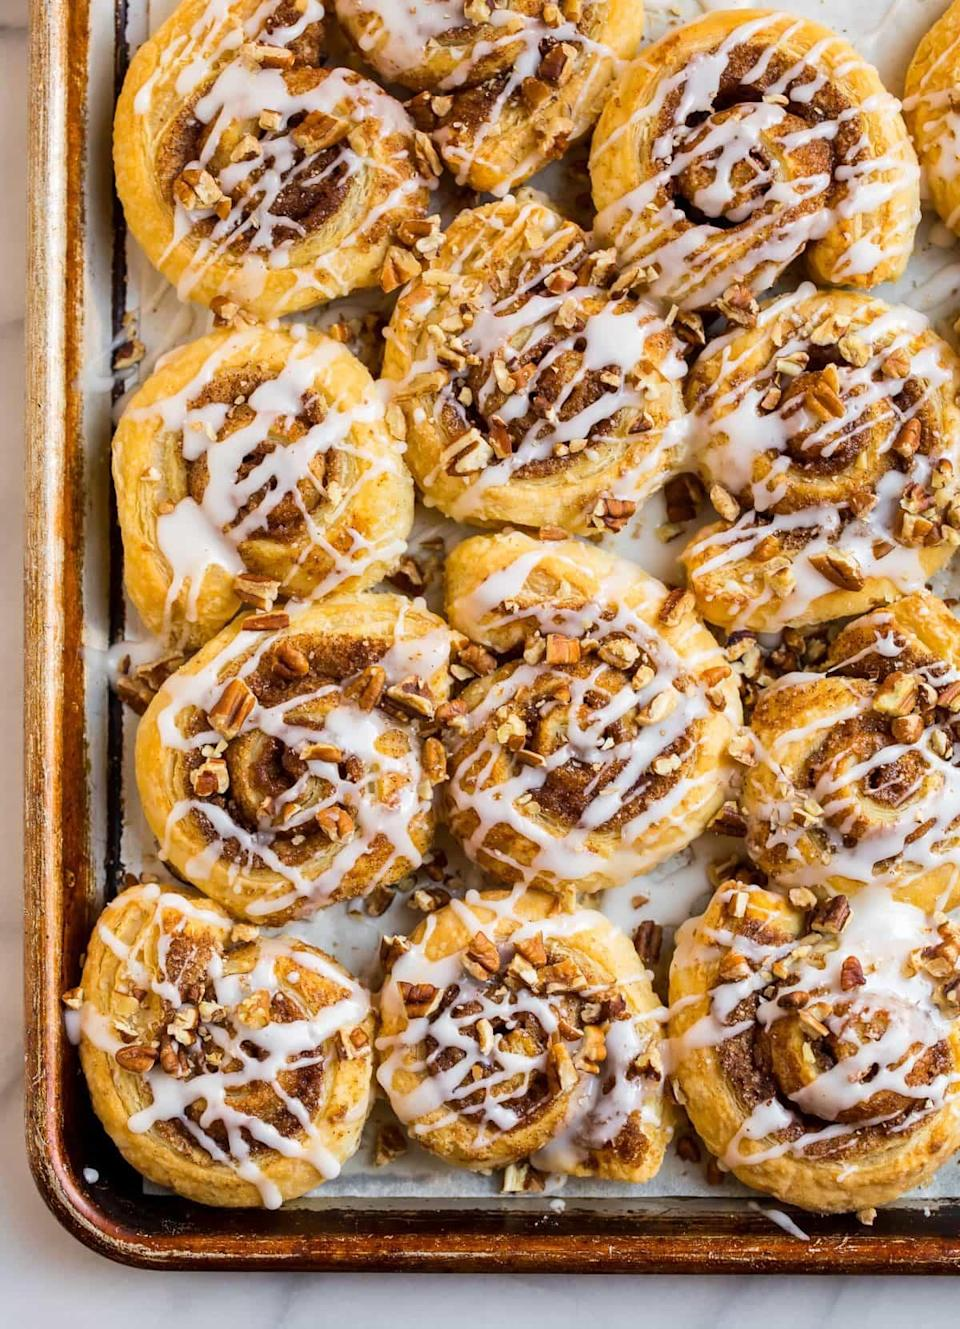 "<p>Back on the cinnamon roll wagon, the people of Oregon know these tasty treats won't disappoint. This recipes calls for pecans, and a powdered sugar, vanilla, and milk glaze. </p> <p><strong>Get the recipe</strong>: <a href=""https://www.wellplated.com/puff-pastry-cinnamon-rolls/"" class=""link rapid-noclick-resp"" rel=""nofollow noopener"" target=""_blank"" data-ylk=""slk:puff pastry cinnamon rolls"">puff pastry cinnamon rolls</a></p>"